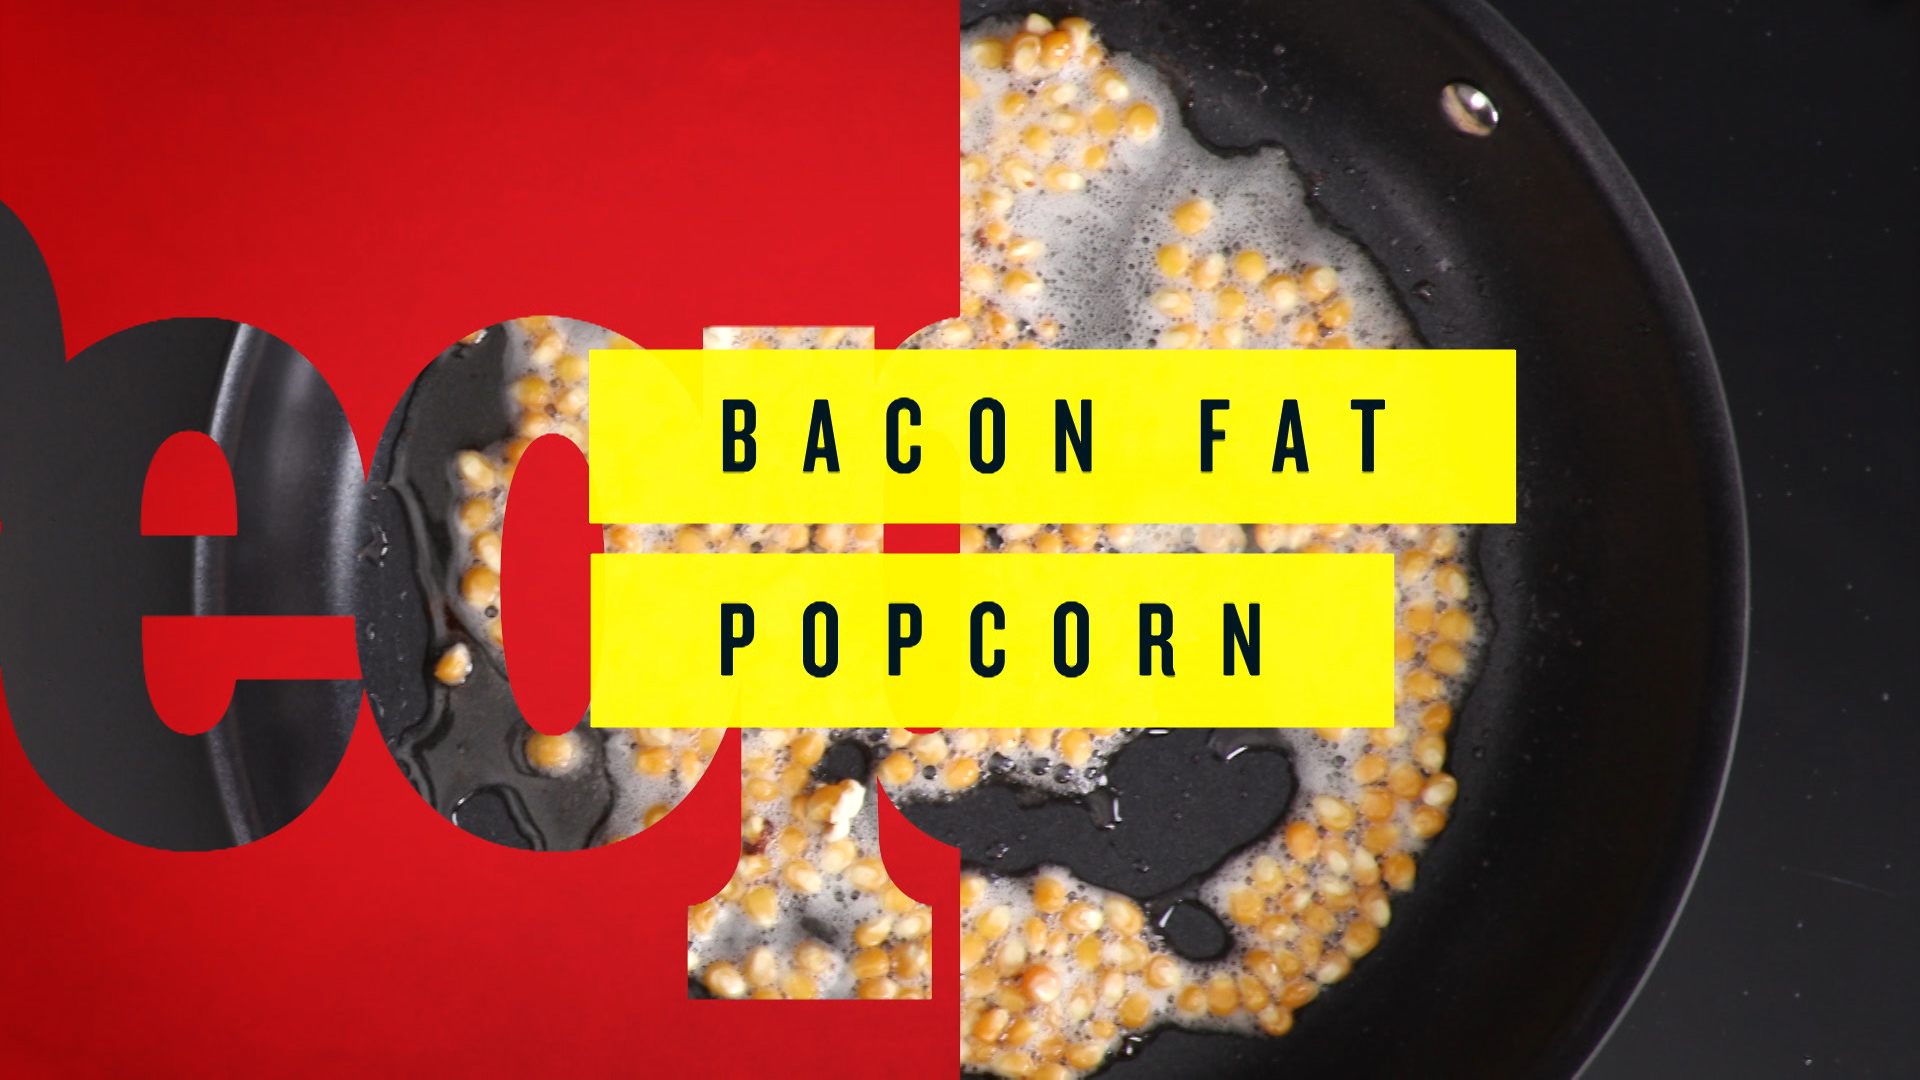 How to Make the Perfect Bacon Fat Popcorn for Your Super Bowl Party